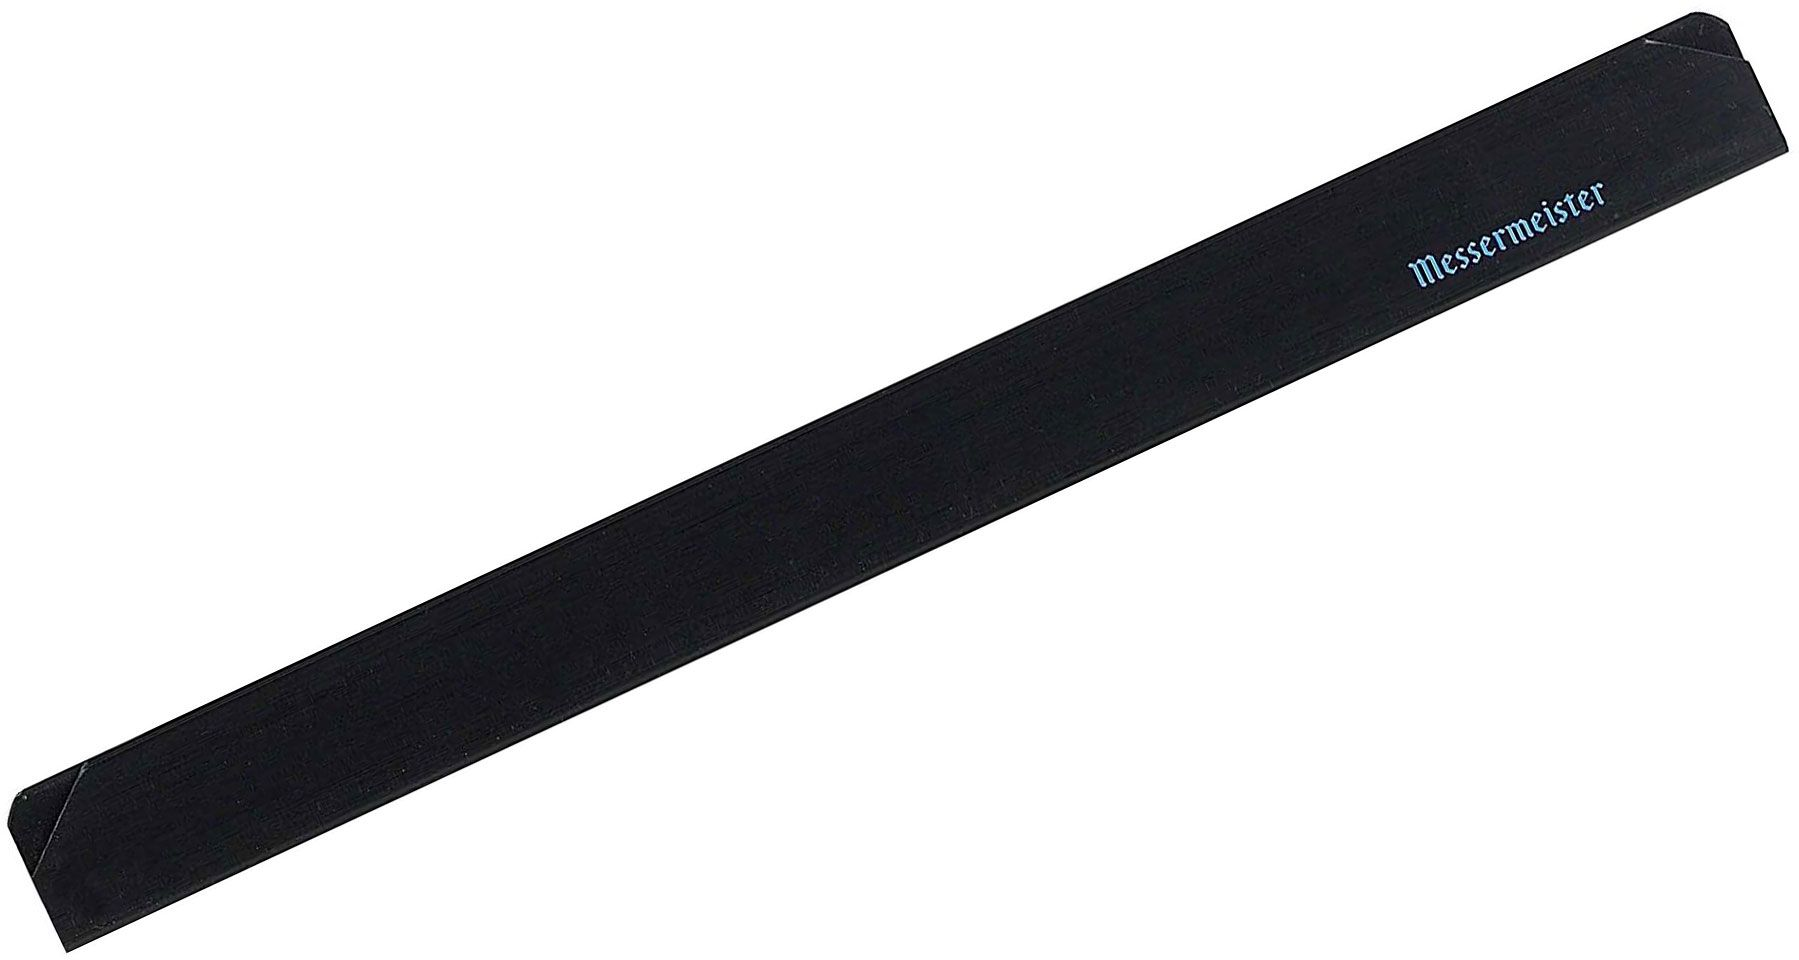 Messermeister 12 inch Slicer Edge Guard, Black